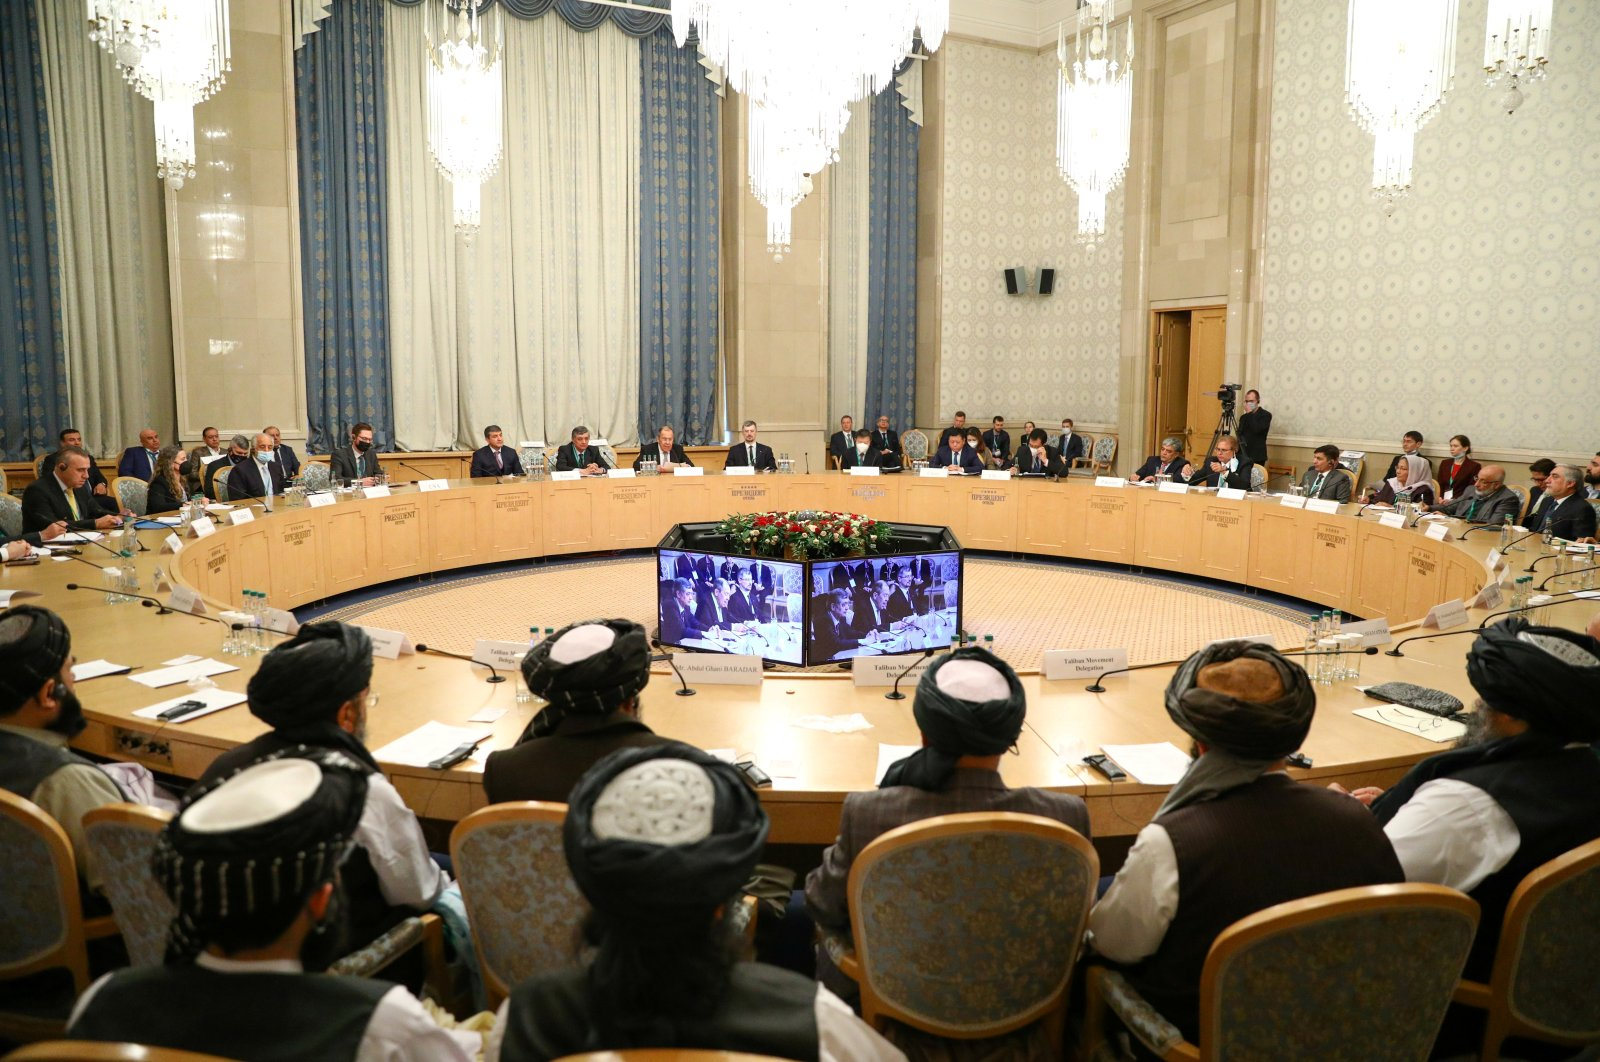 Officials attend the Afghan peace conference in Moscow, Russia, March 18, 2021. (Reuters Photo)